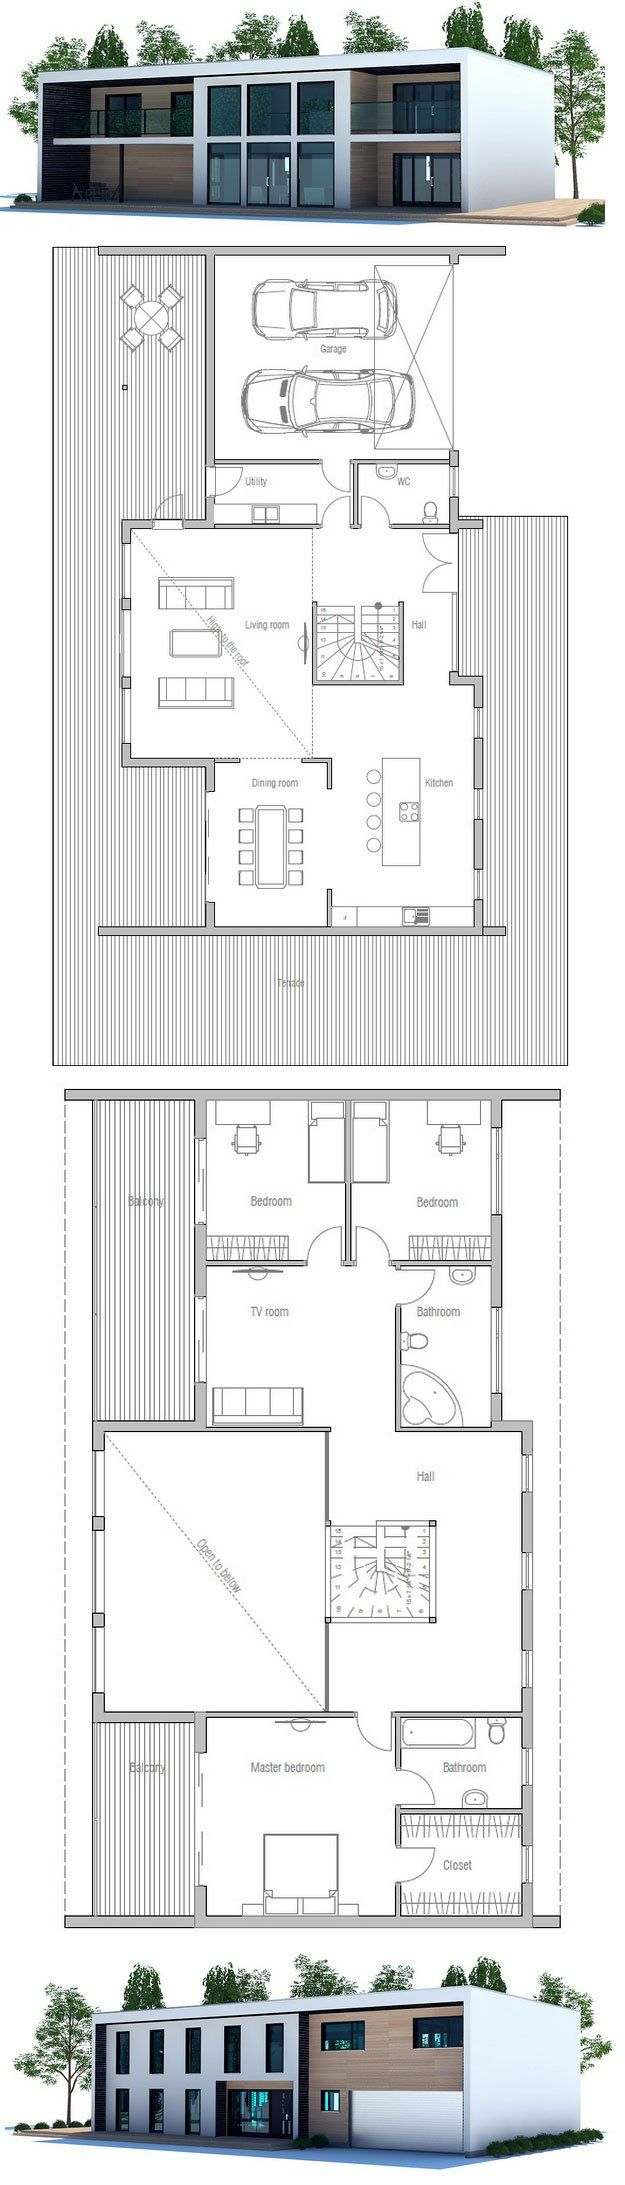 63 best images about modern house plans on pinterest for Wide lot house plans